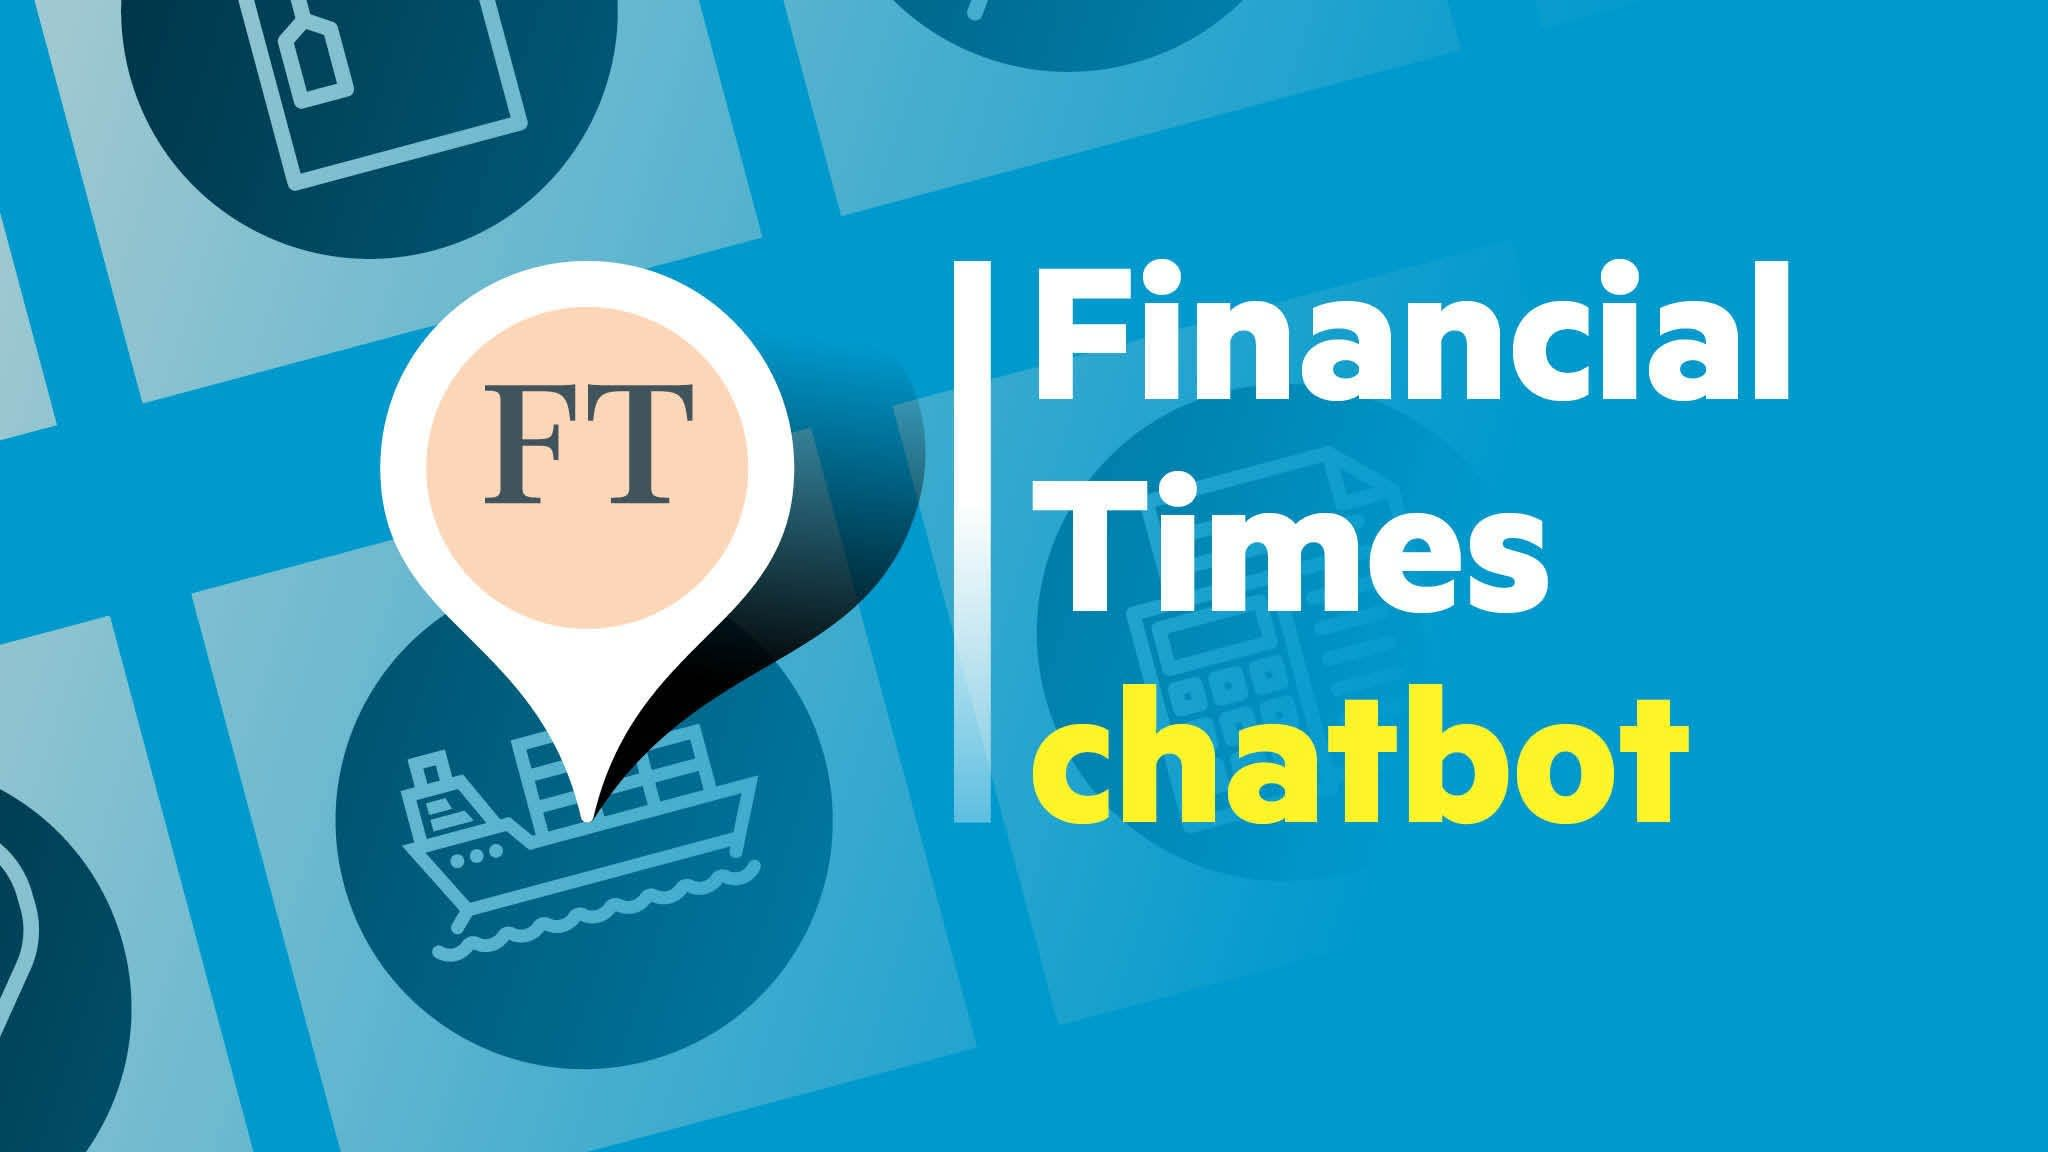 Introducing the Financial Times chatbot | Financial Times